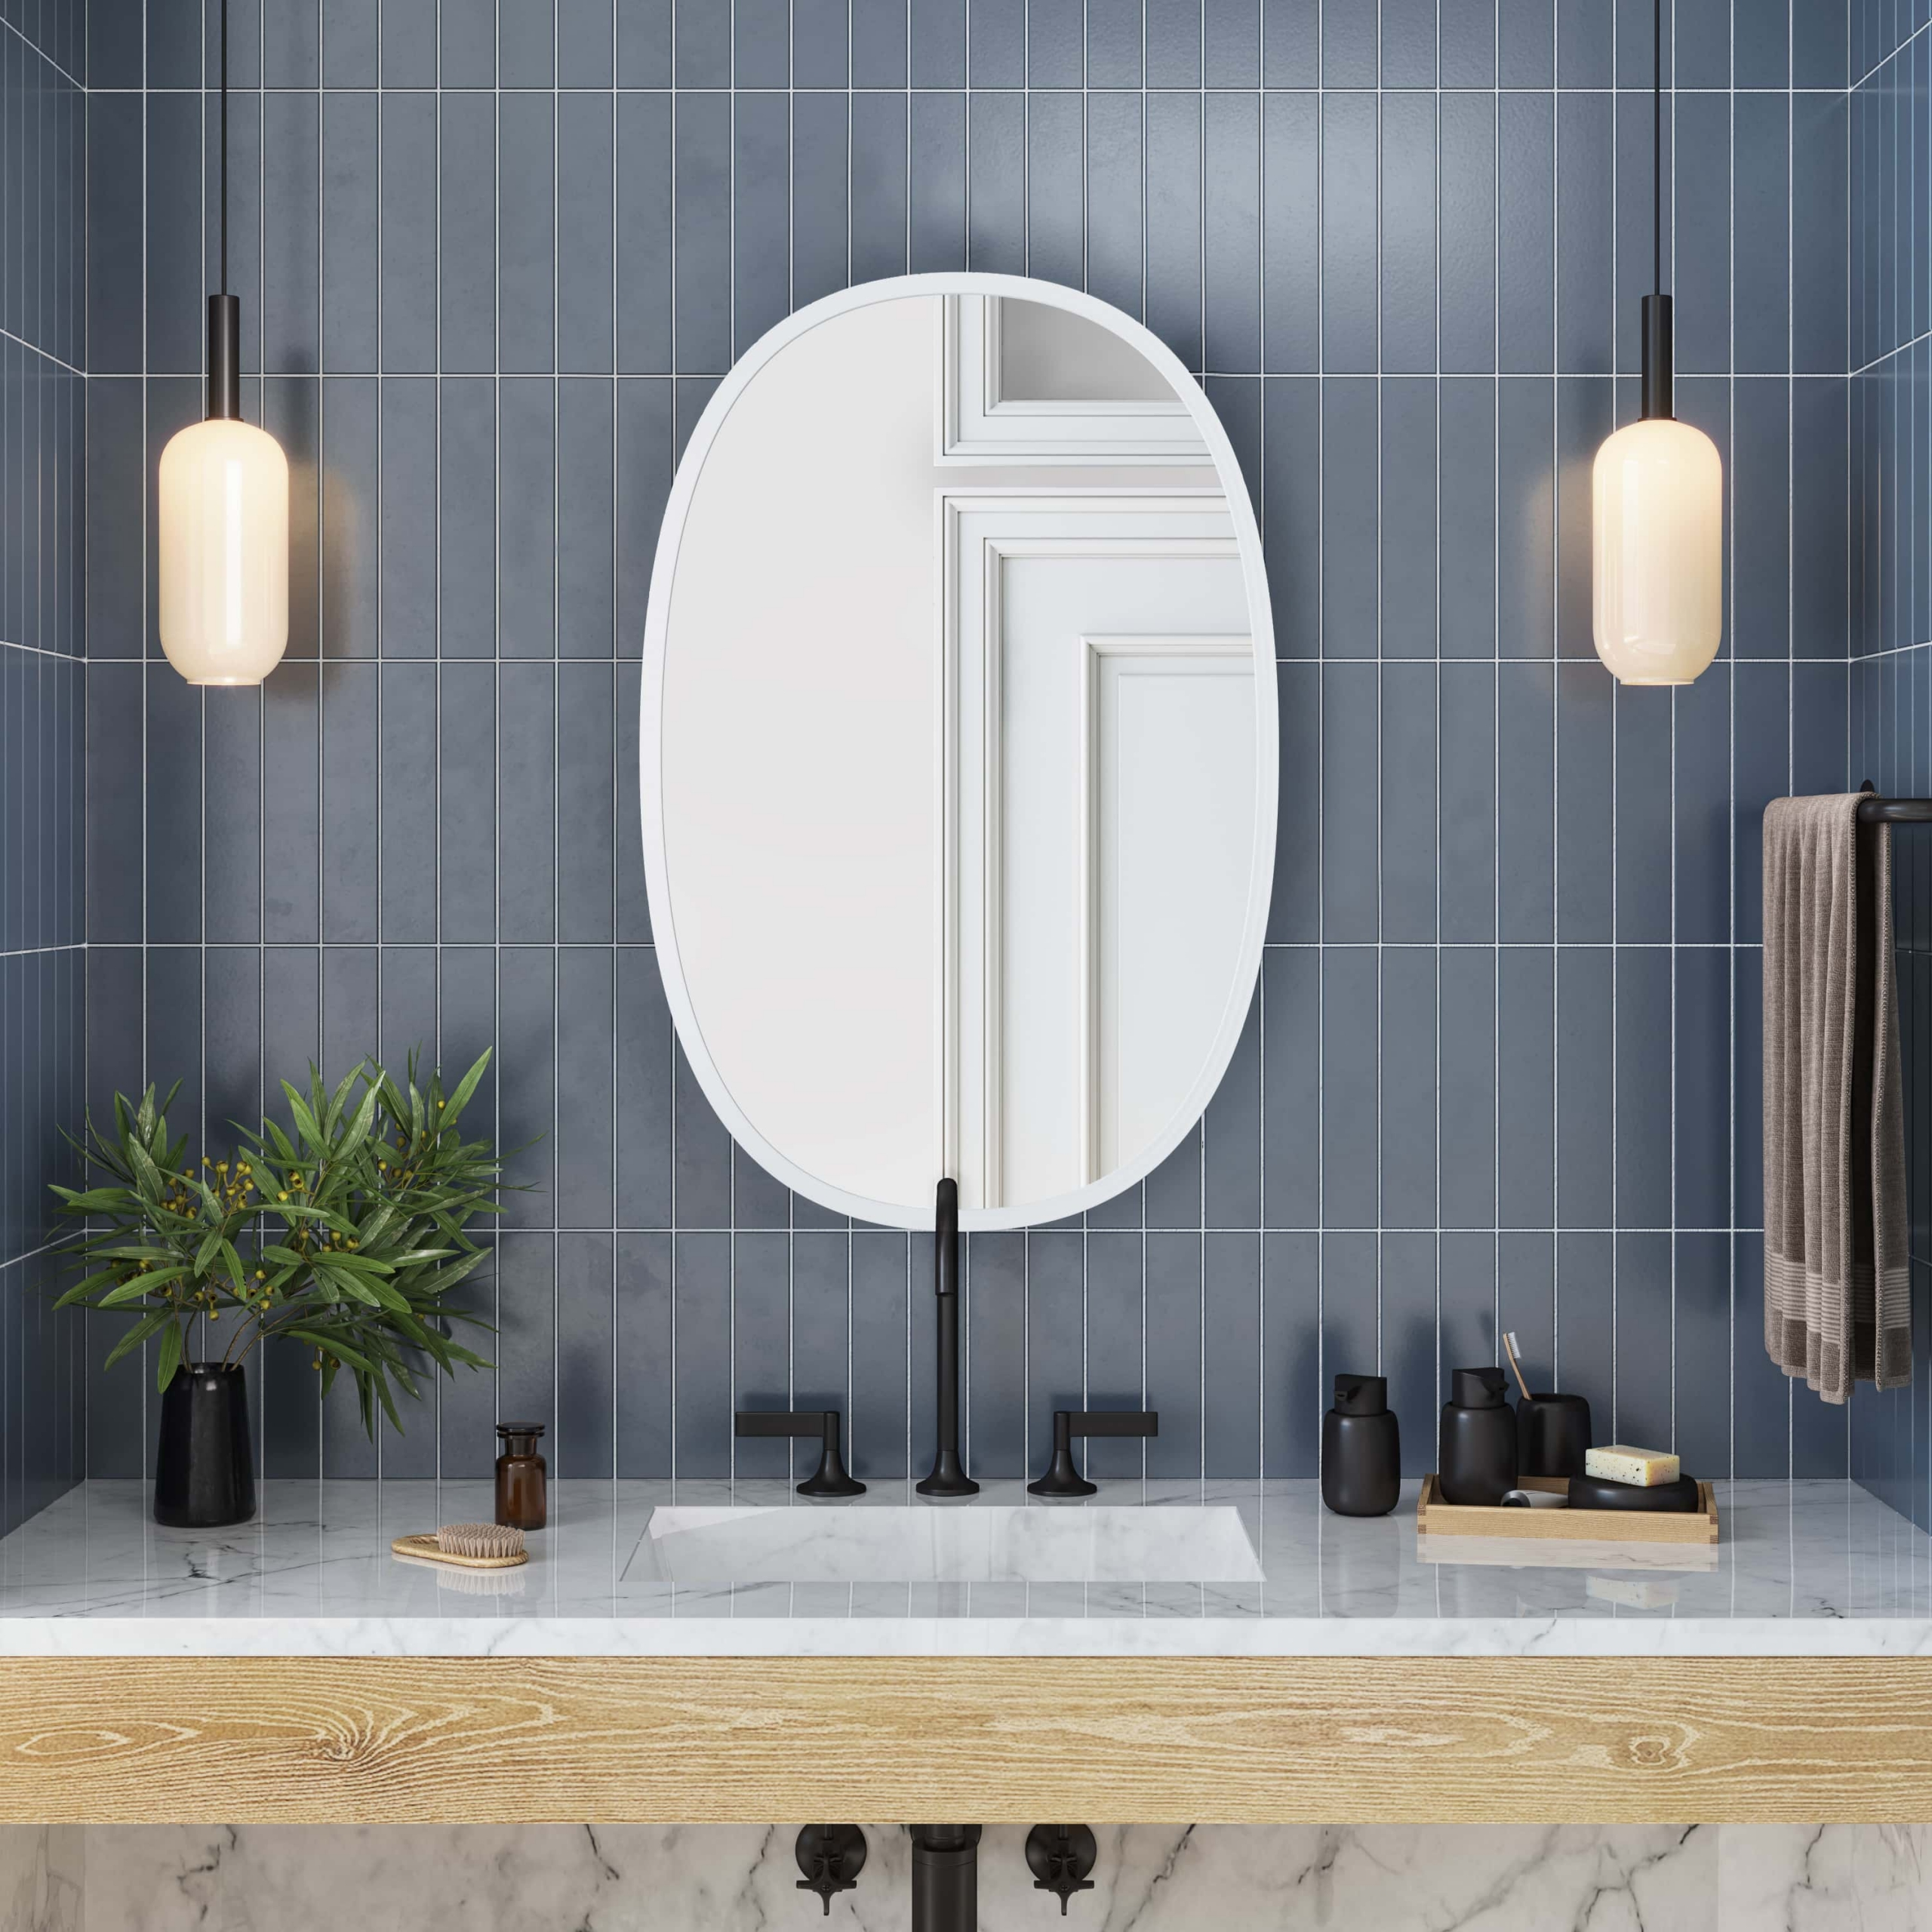 White rubber framed oval mirror hanging on blue tiled bathroom wall above vanity